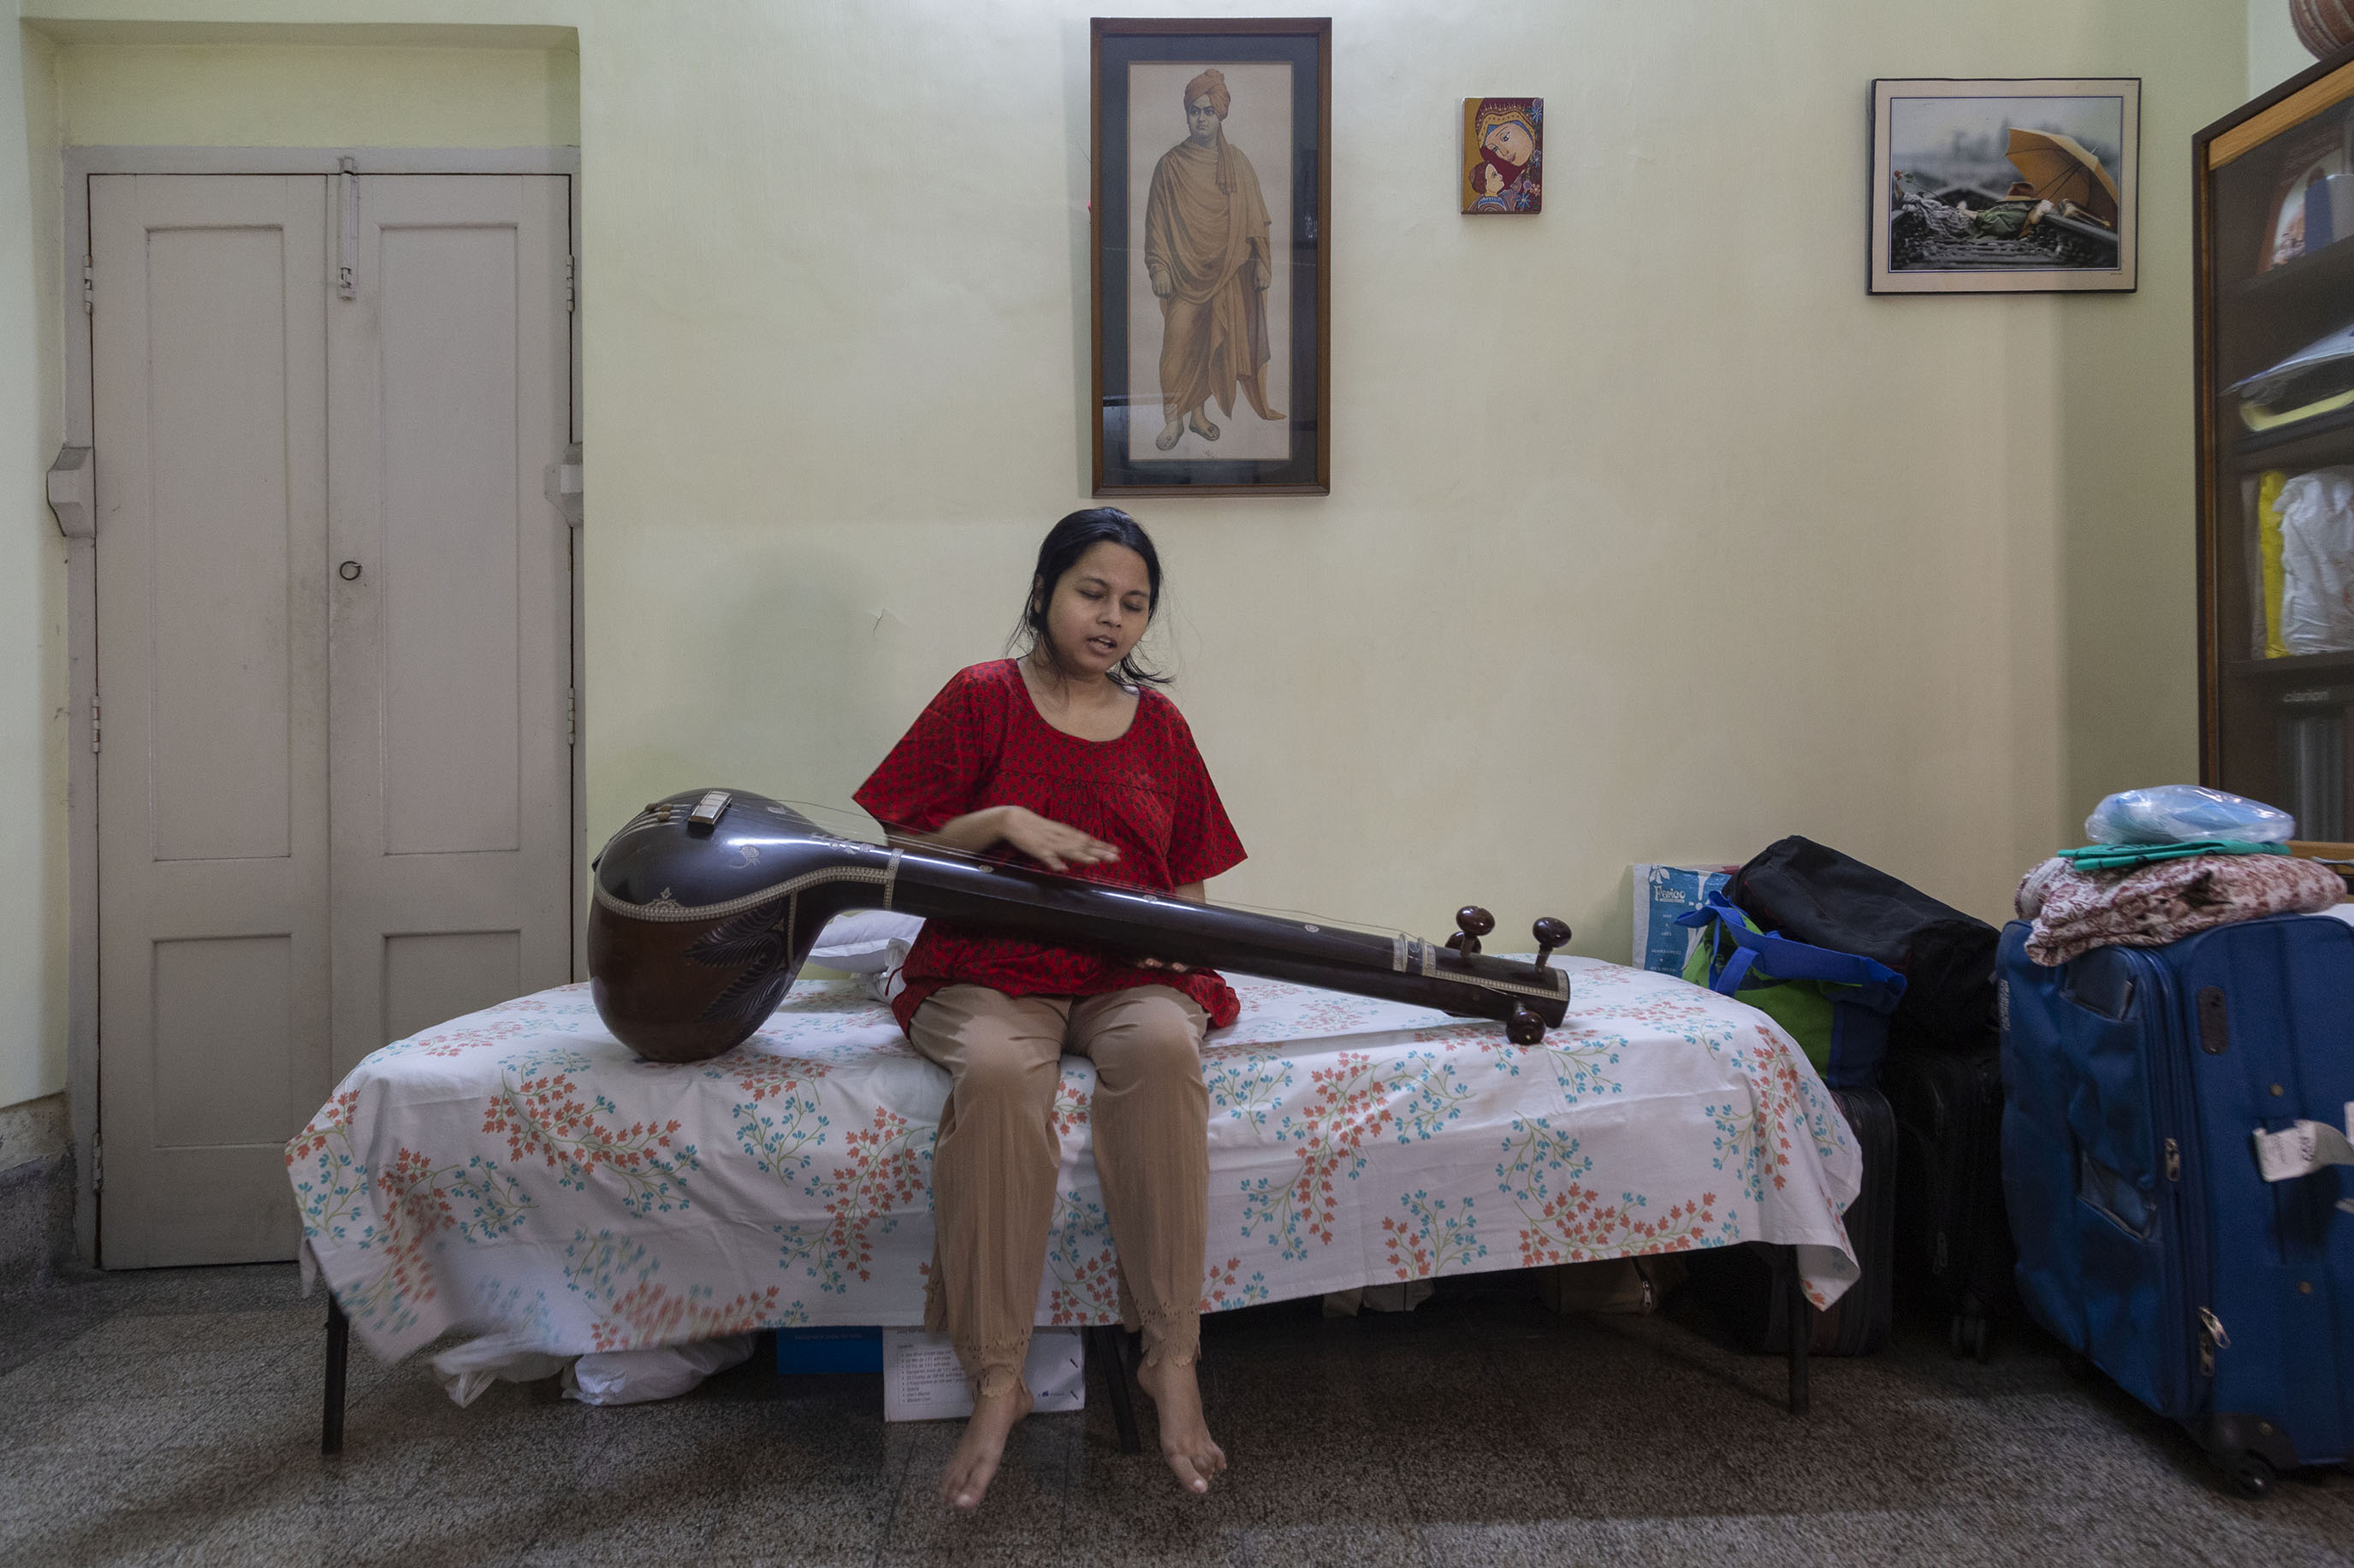 Soumita sits on a bed covered with a sheet printed with sprays of small blue and orange flowers. She wears a half-sleeved deep red top and peach-coloured salwar. Her bare feet are dangling. A dark brown veena is placed across her lap and rests on the bed. Her right hand hovers over the neck of the veena almost touching its strings. To the right of the bed is a huge dark blue suitcase placed upright on the floor, and to the left is a closed door painted white. On the pale green wall behind her hangs a framed full-length portrait of Swami Vivekananda in saffron robes.